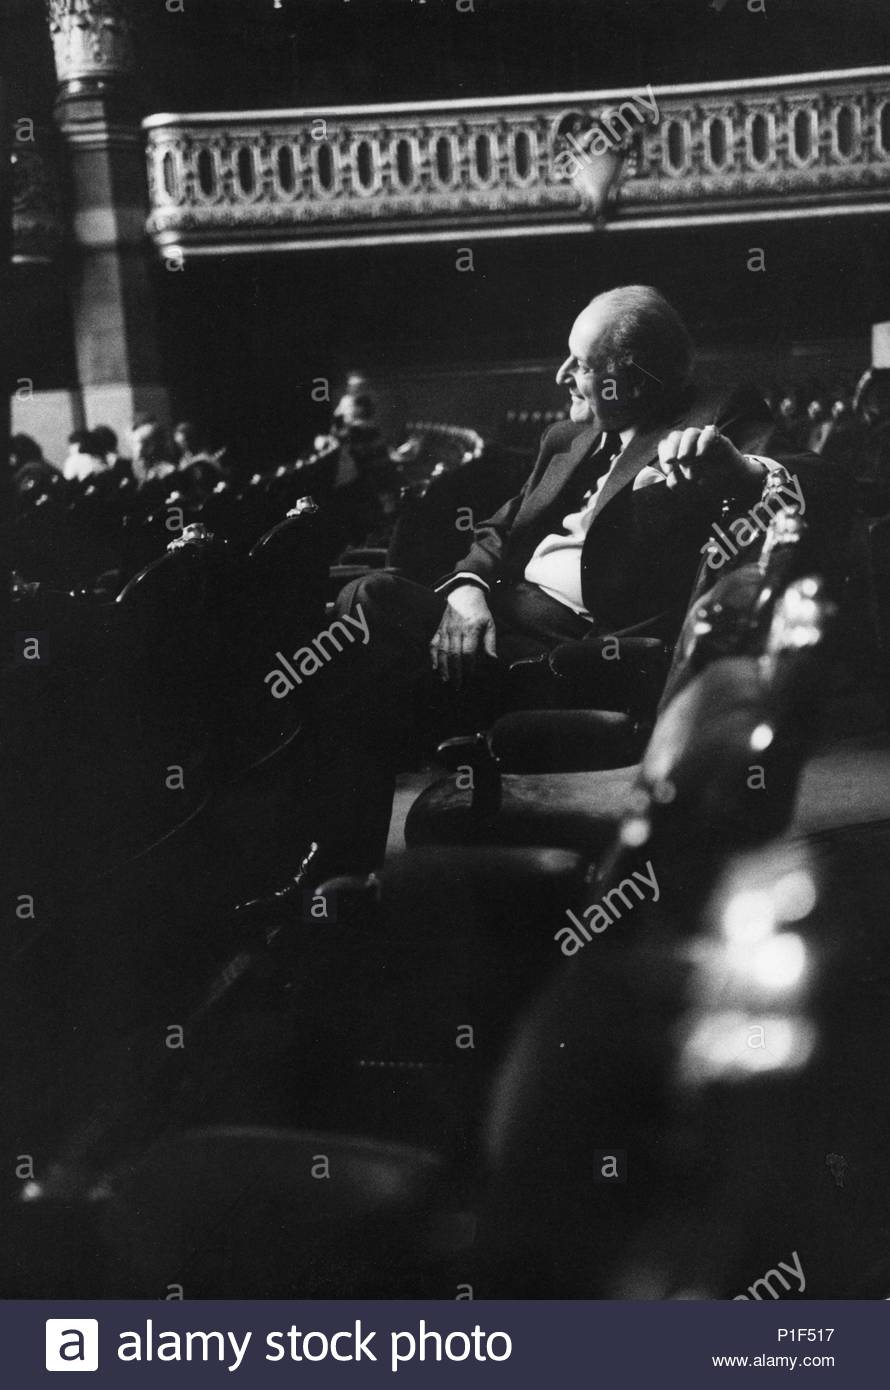 The Paris Opera in the Palais Garnier reopened in 1973 under its new director Rolf Liebermann.   Liebermann watching a rehearsal of the Marriage of Figaro, opener of the new season.   Paris Opera,1973. Location: Opera House Palais Garnier, Paris, France. - Stock Image